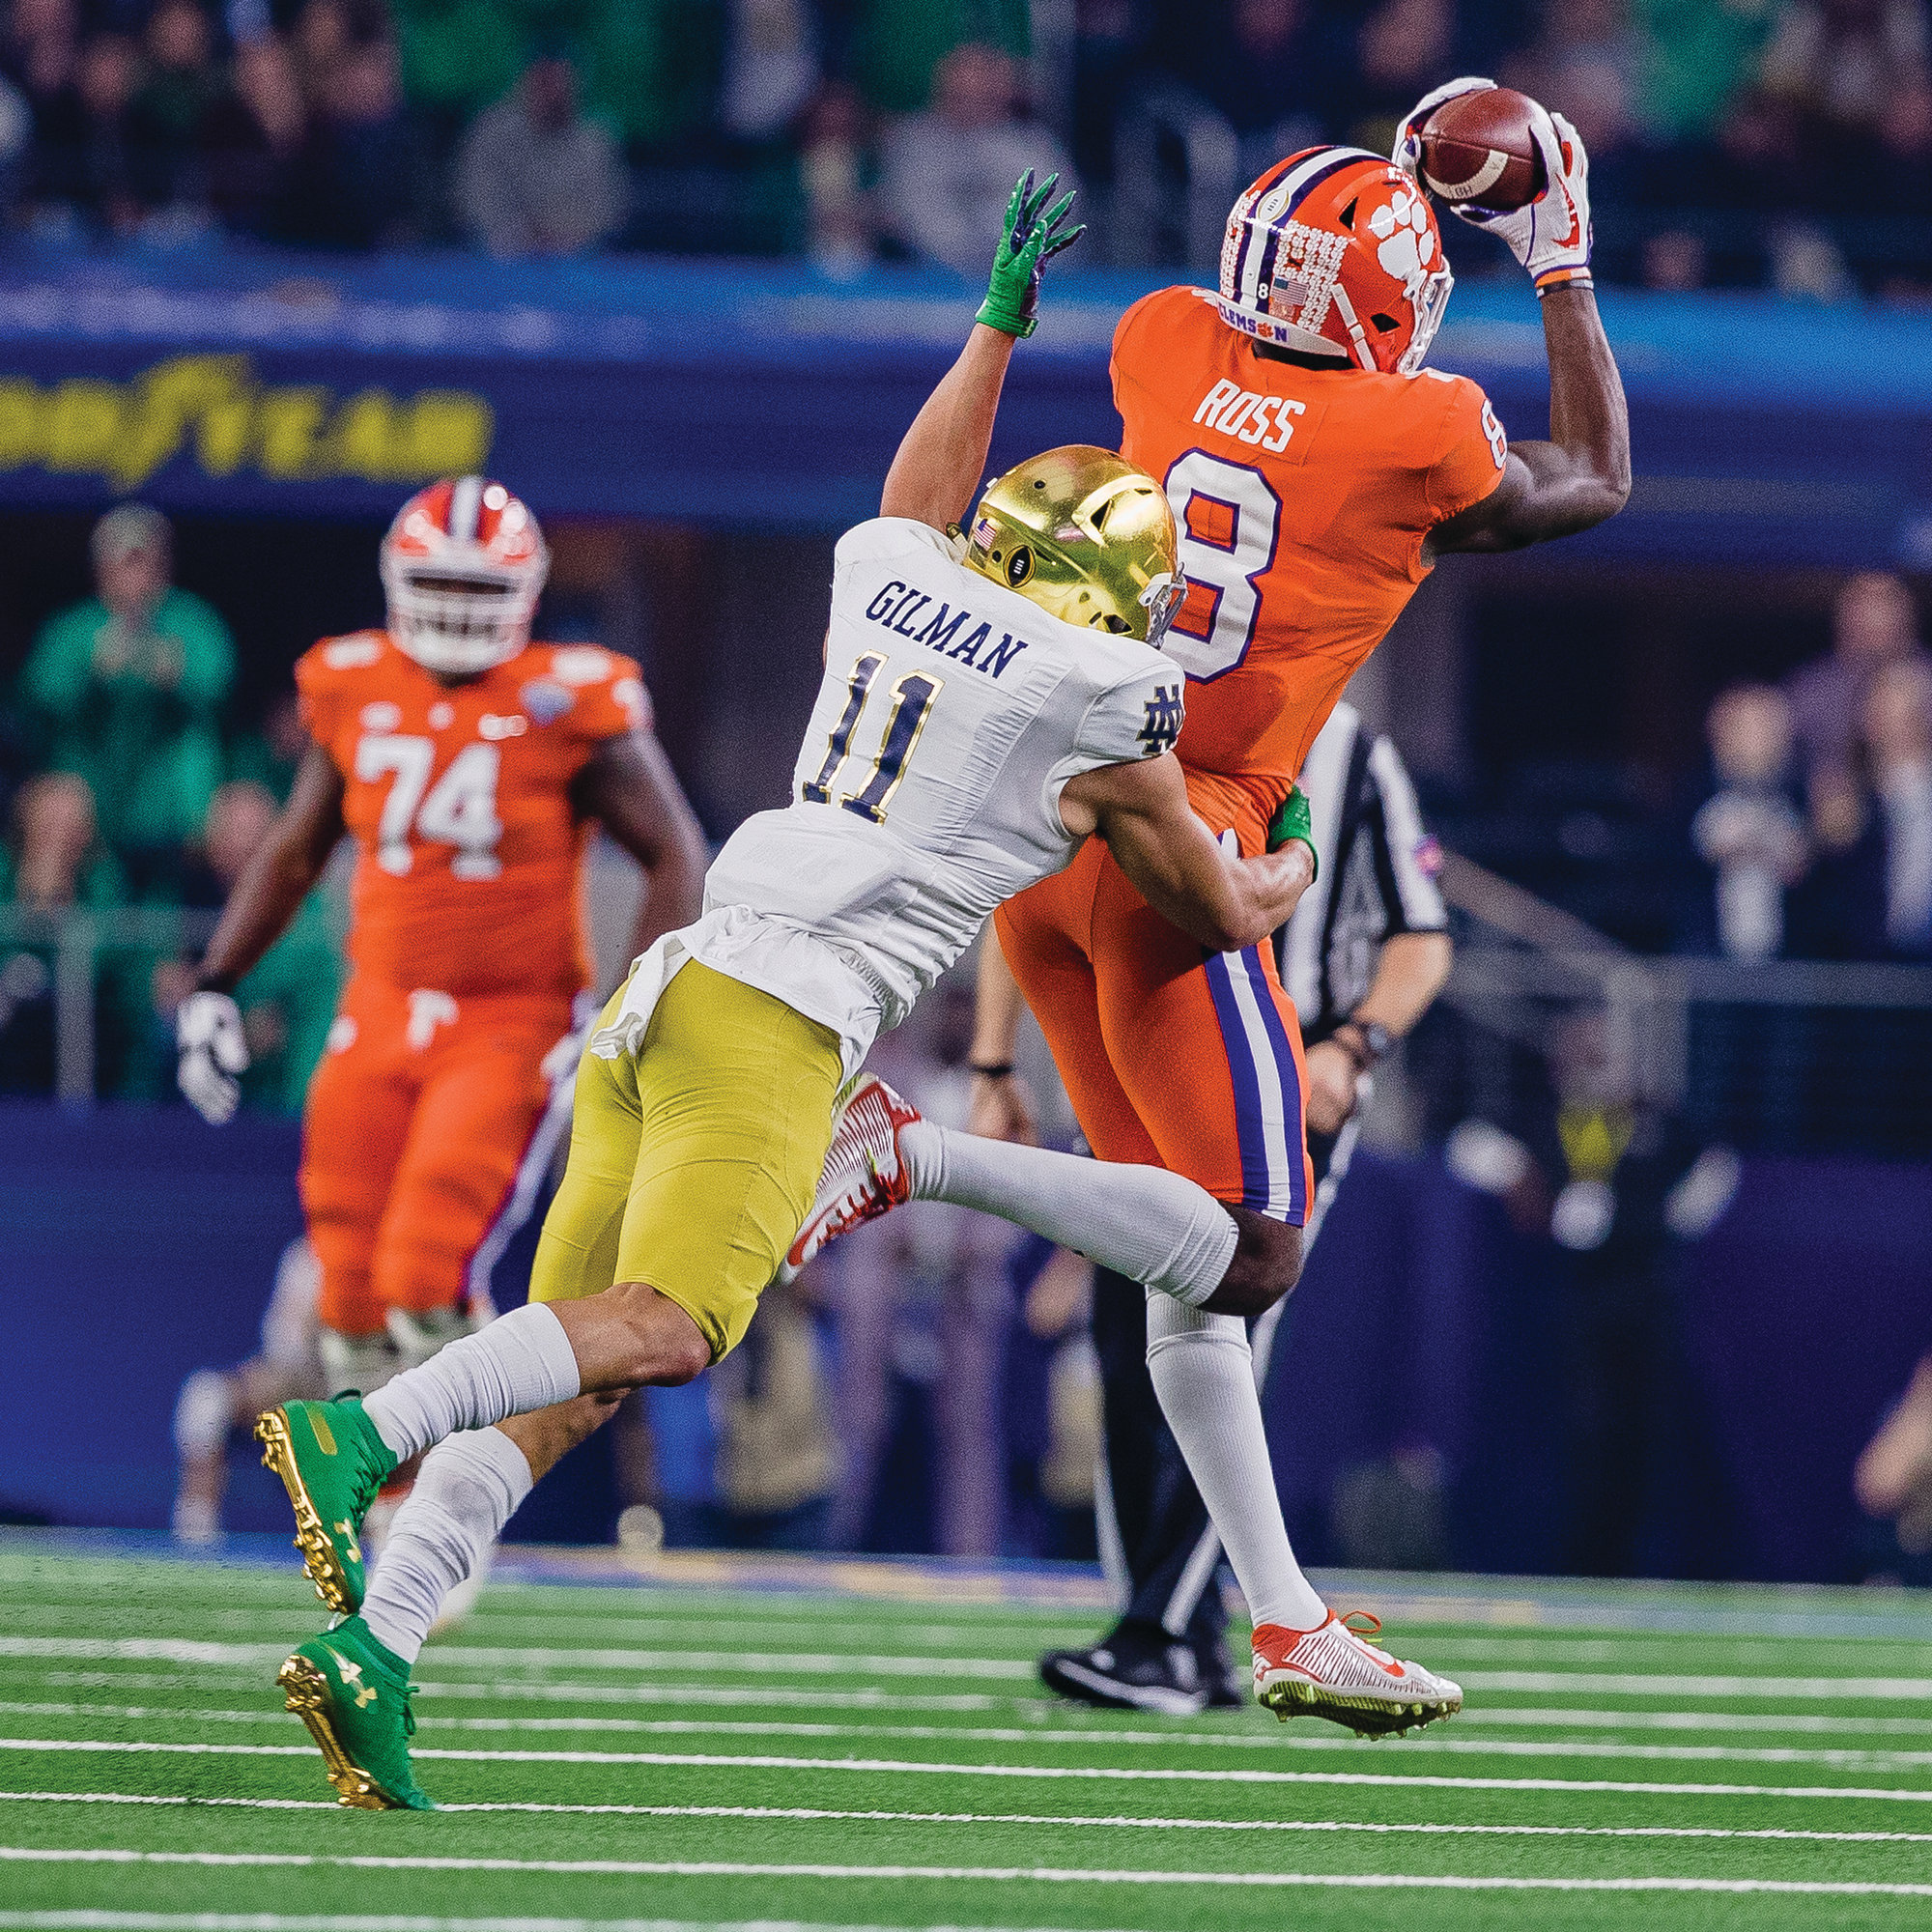 Clemson true freshman wide receiver Justyn Ross (8) catches a touchdown pass in front of Notre Dame safety Alohi Gilman during the Tigers' 30-3 victory in the Cotton Bowl.